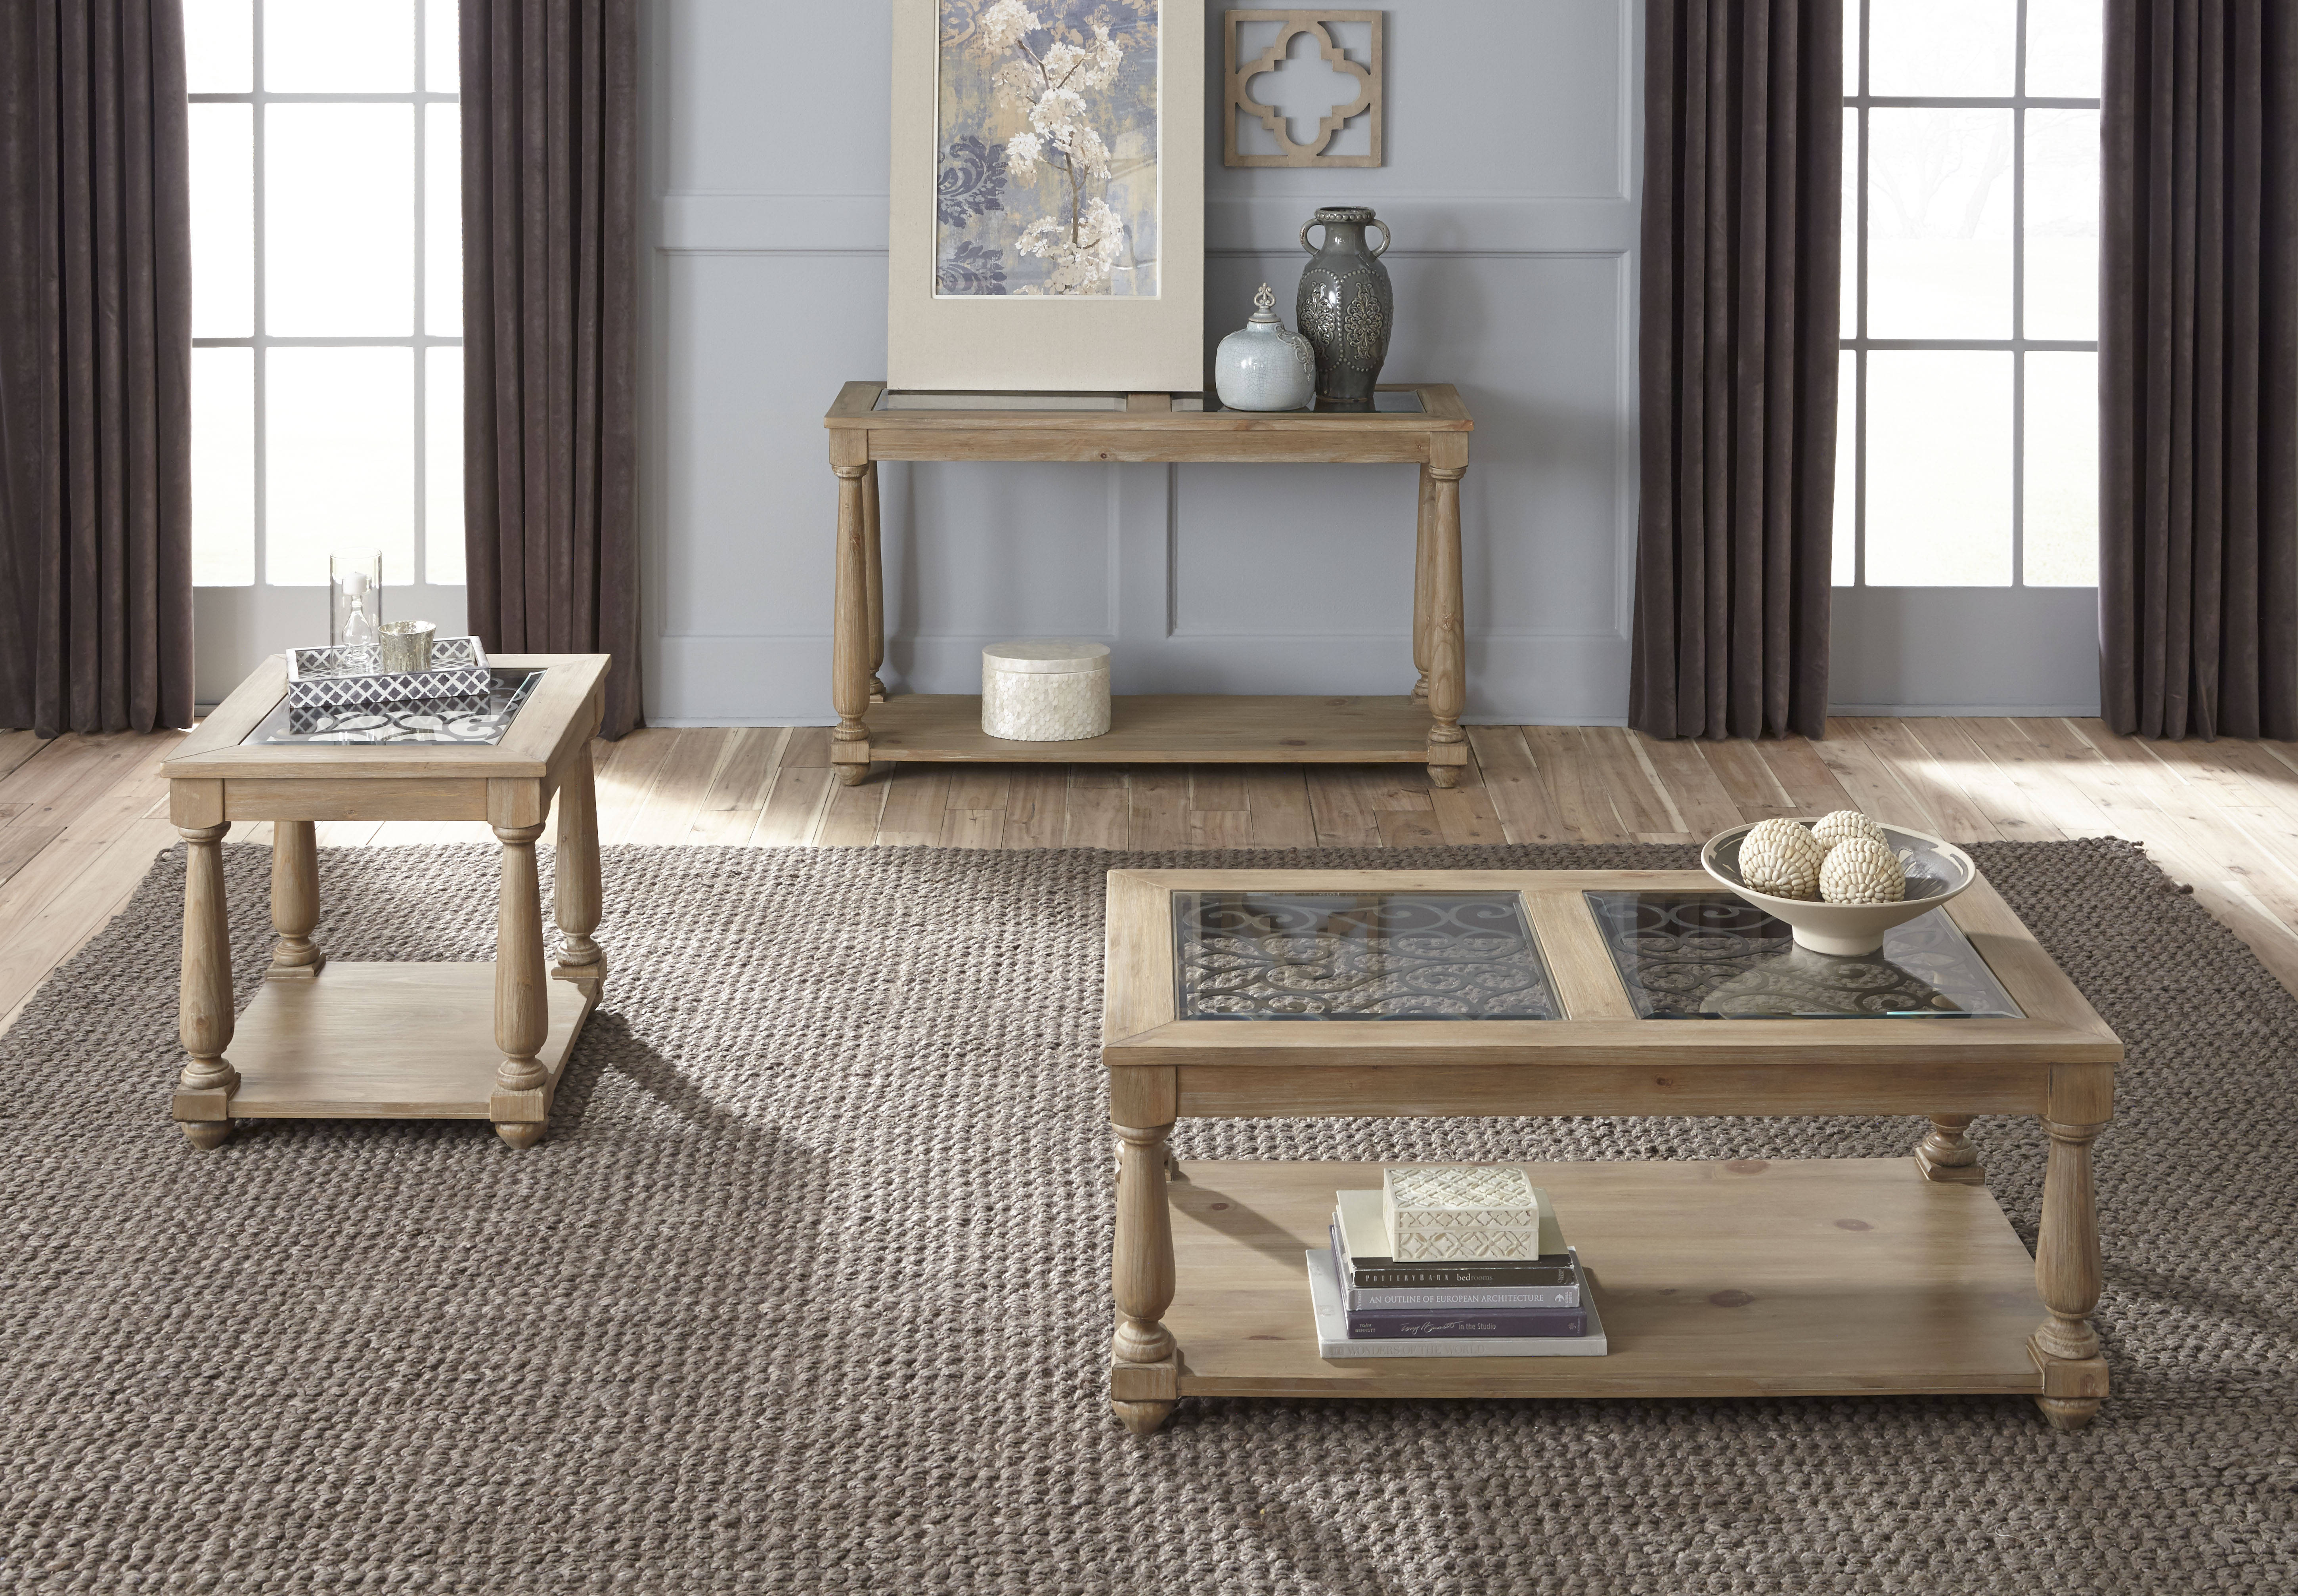 Standard Furniture Savannah Distressed Toffee 3pc Coffee Table Set